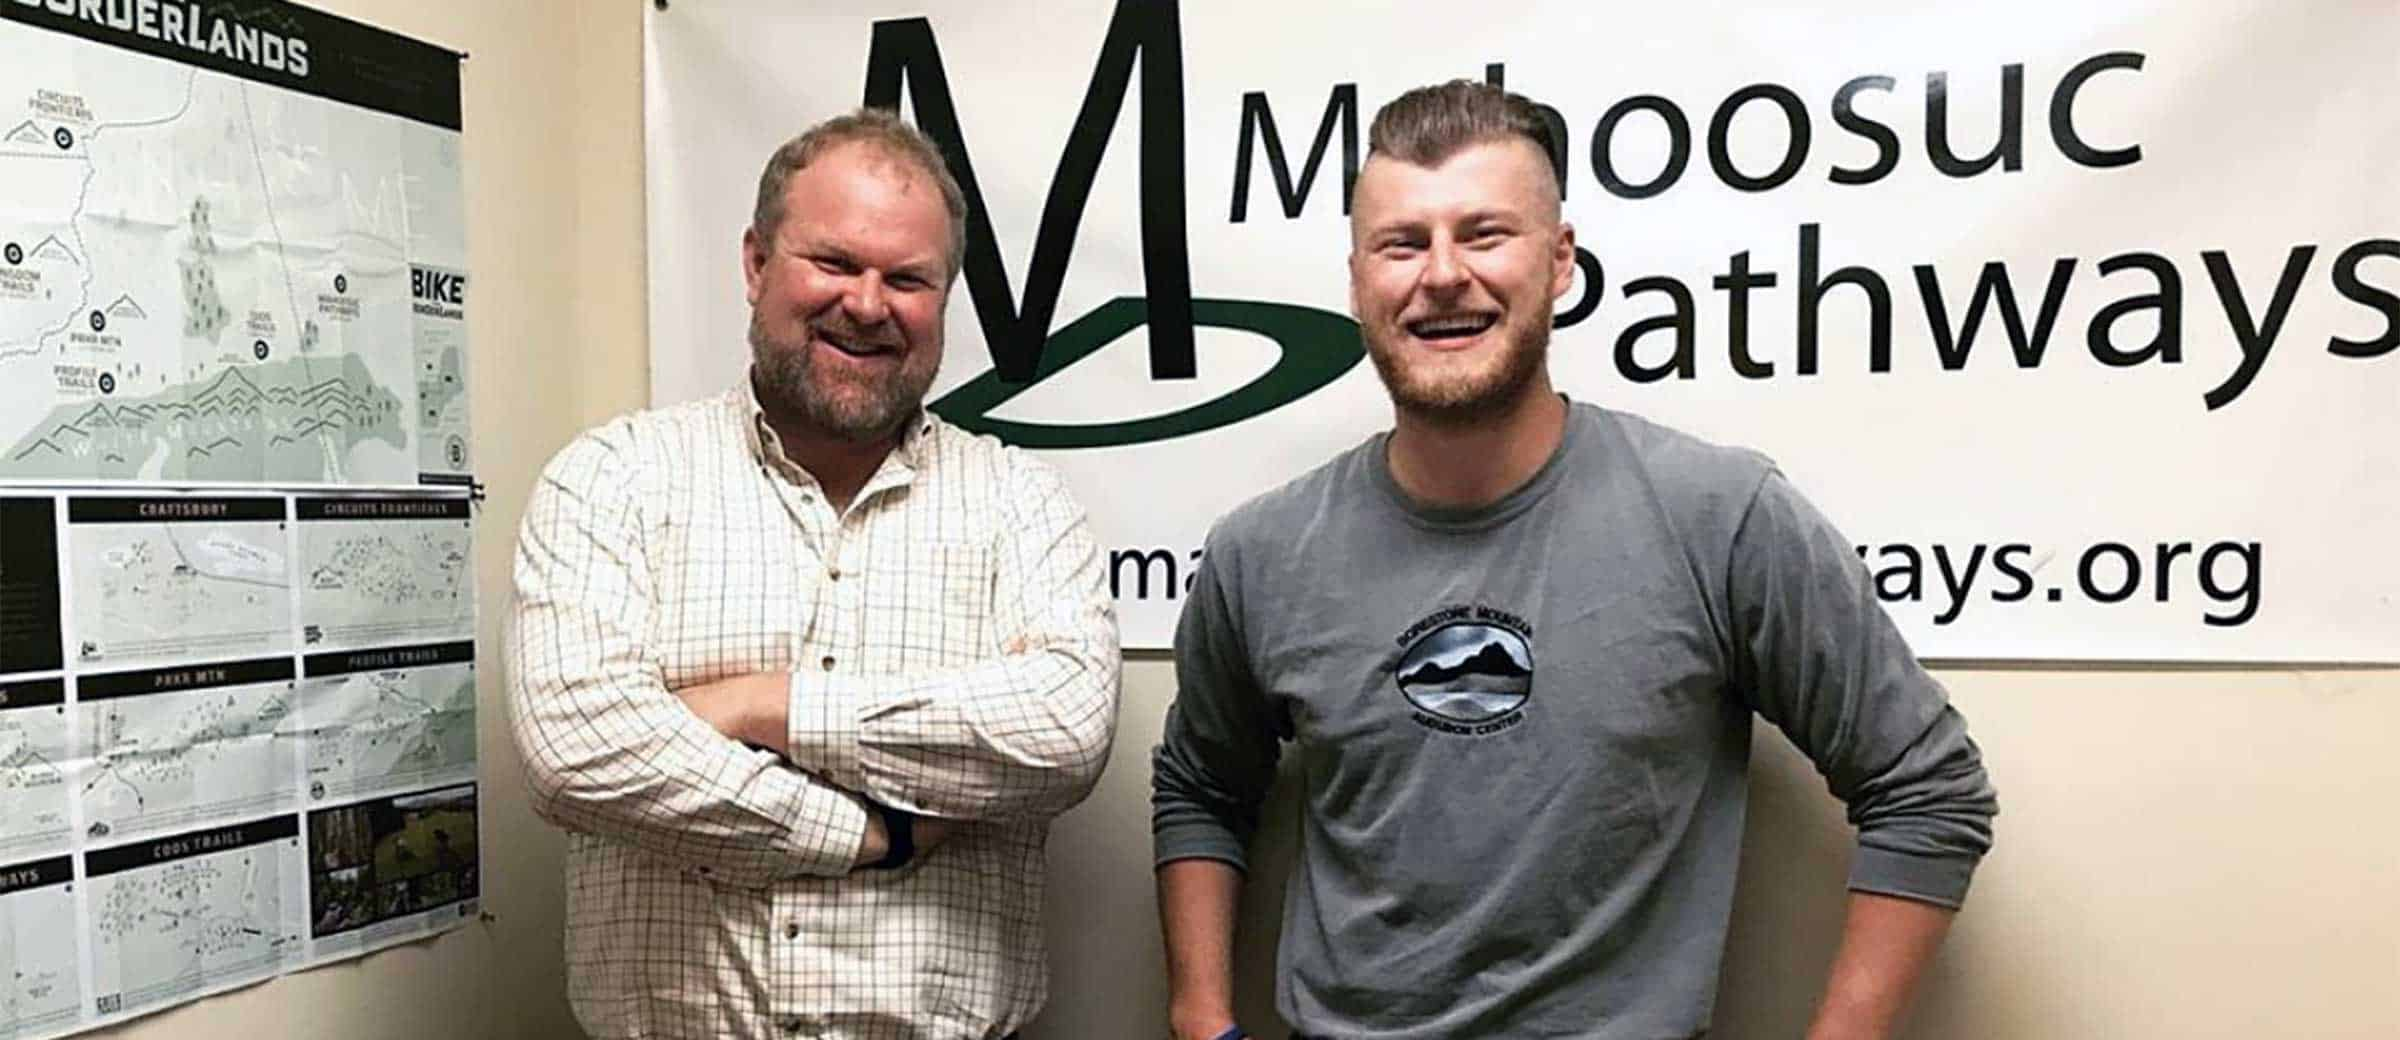 """Jacob says, """"While working for Gabe Perkins, Executive Director of Mahoosuc Pathways, this summer, I was often asked whether I was his younger brother or his son. I normally replied, """"Neither, I'm his dad."""""""